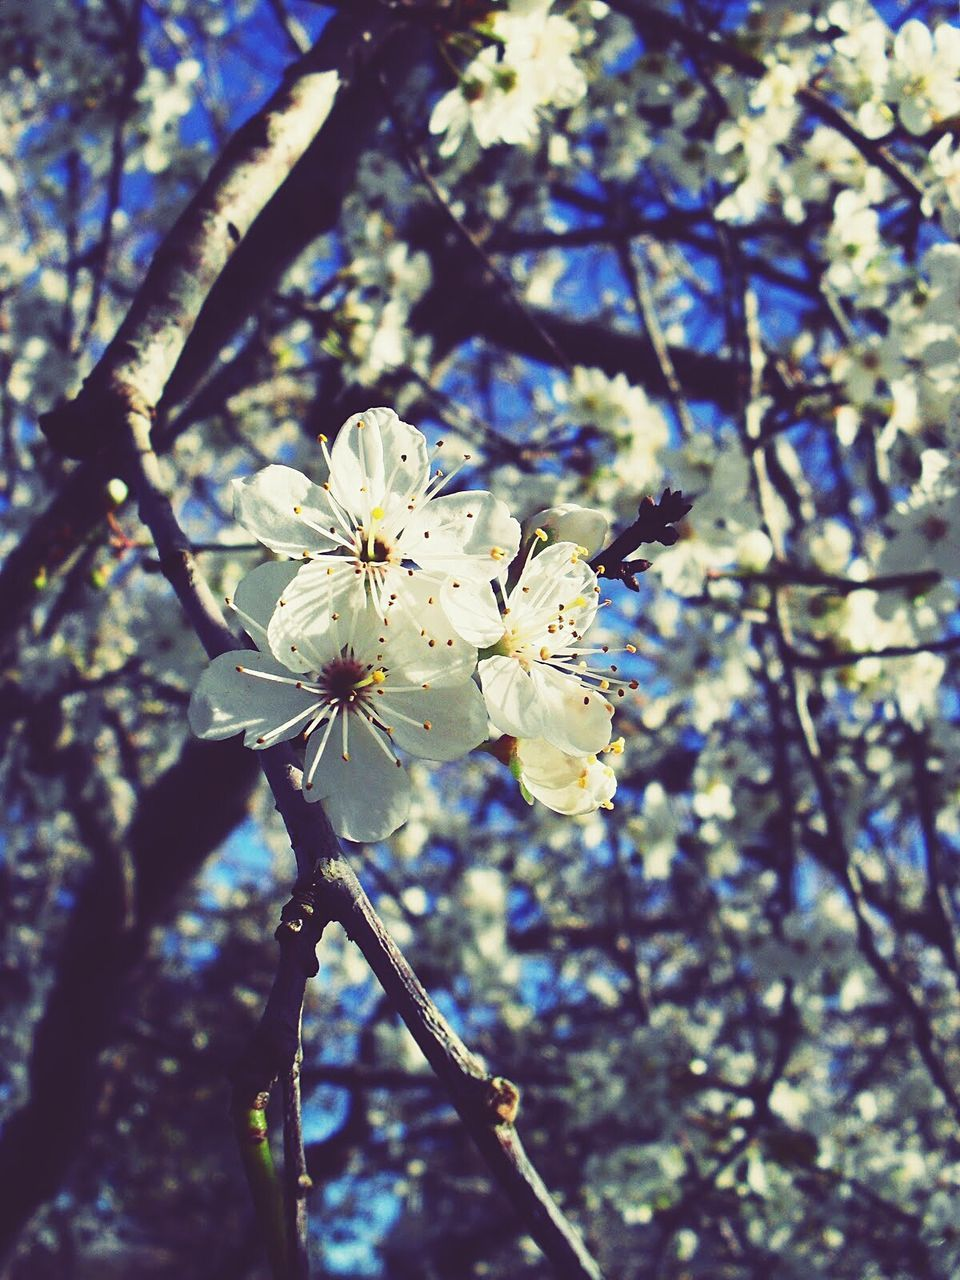 flower, blossom, fragility, tree, growth, branch, beauty in nature, nature, springtime, white color, apple blossom, petal, apple tree, orchard, freshness, botany, flower head, pollen, no people, plum blossom, day, stamen, twig, low angle view, spring, close-up, blooming, outdoors